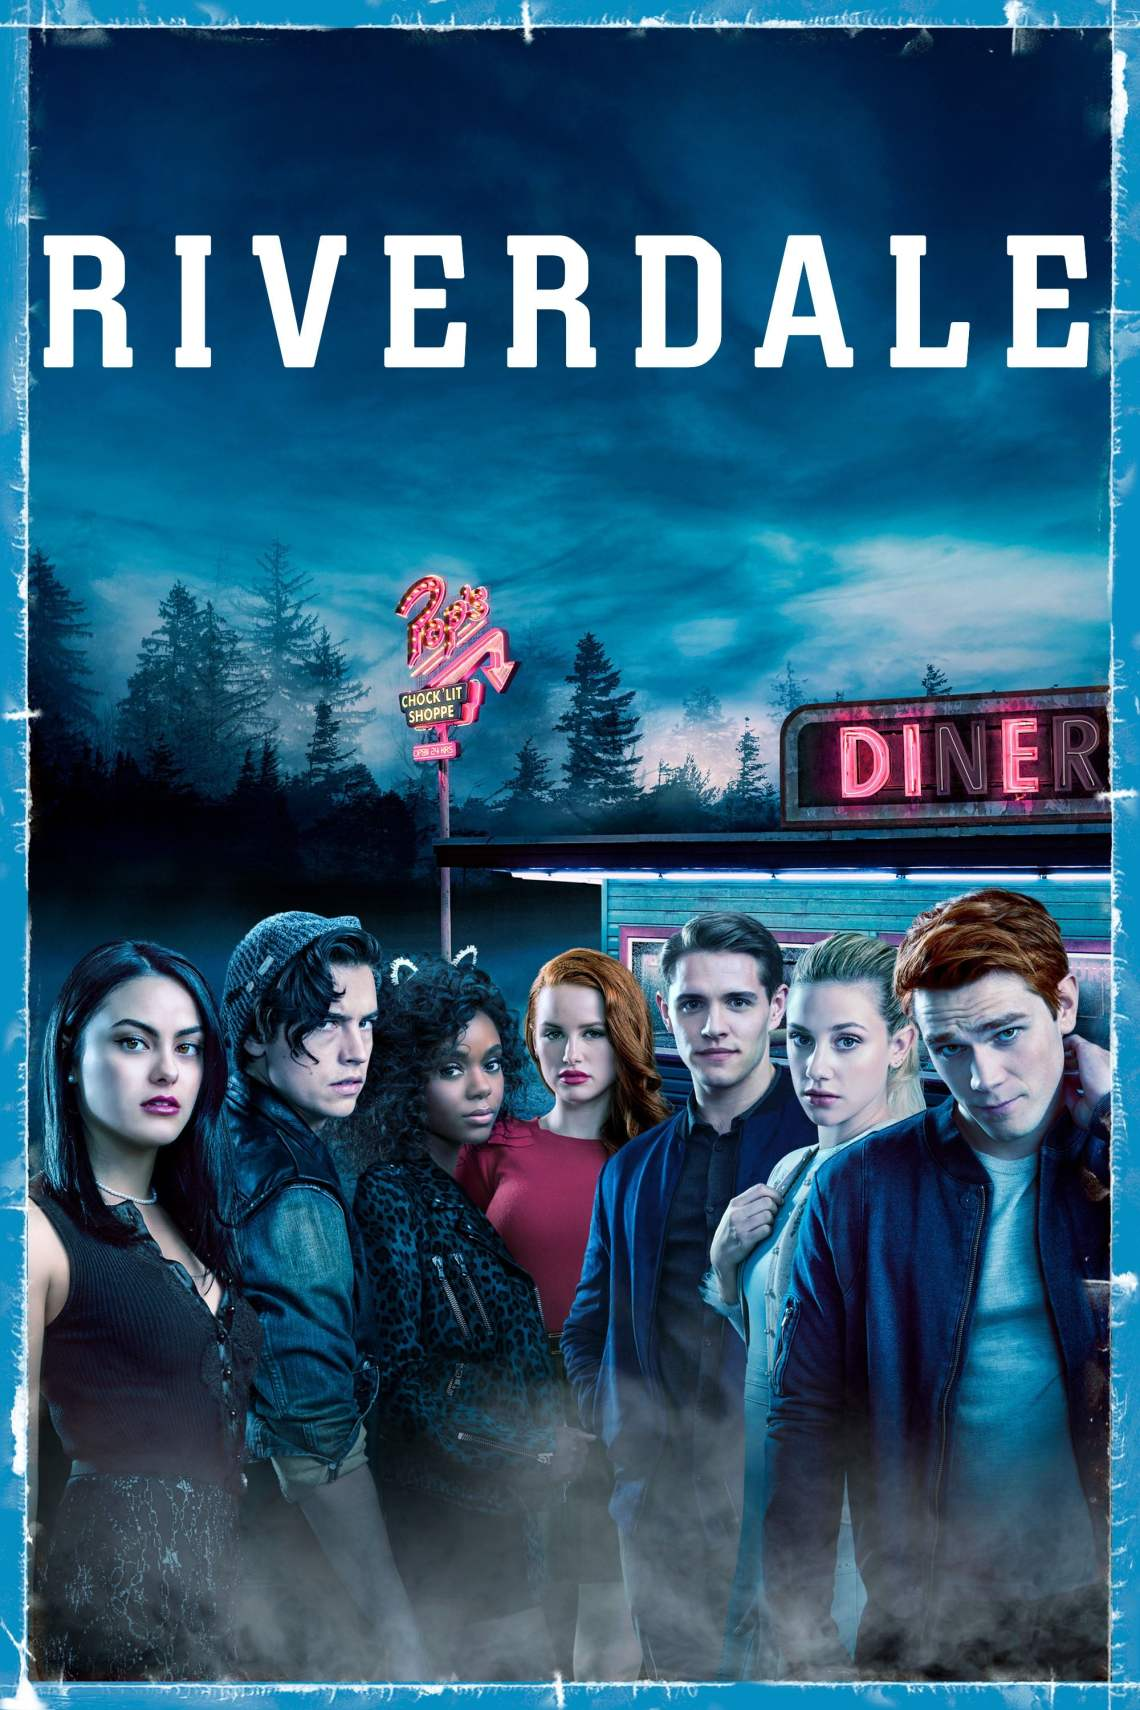 Riverdale Tv Series  Posters The Movie